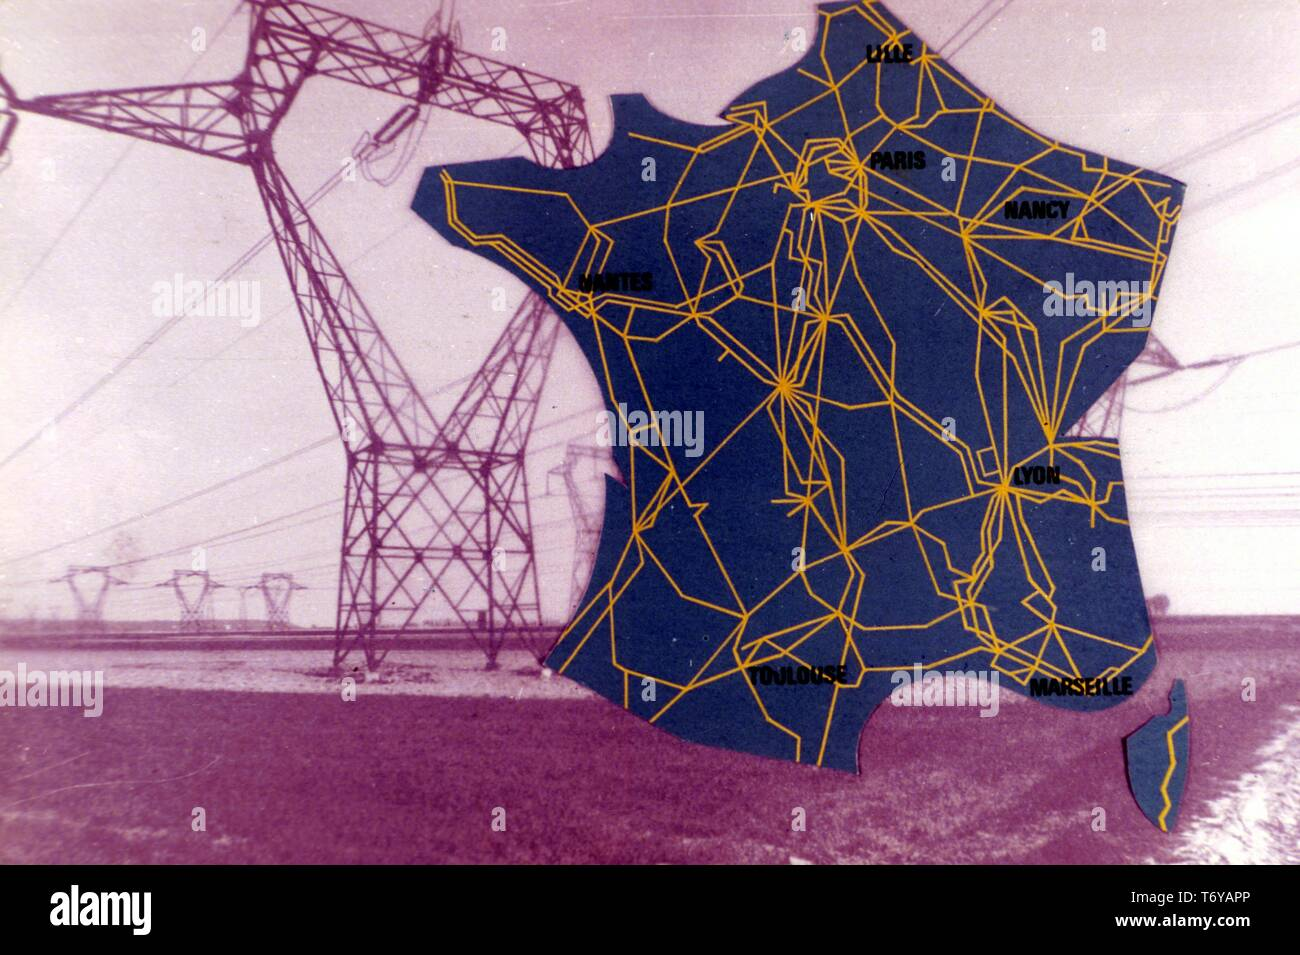 Map Of France Showing Lille.Map Of France Superimposed Over A Photograph Of An Electrical